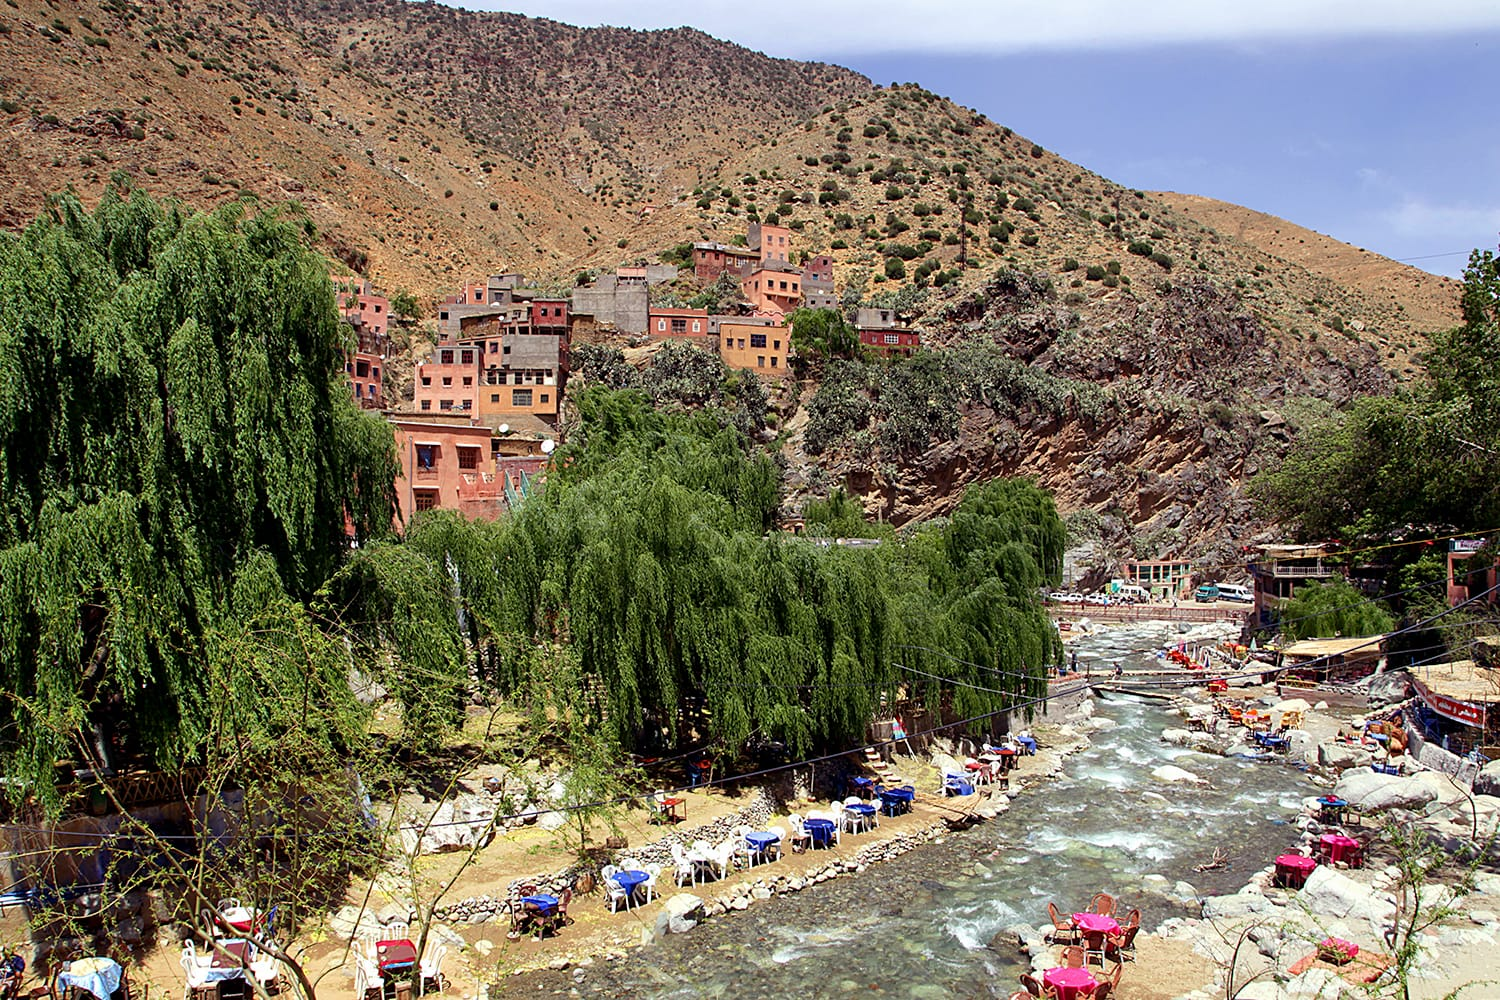 Berber village in the Ourika Valley, Morocco